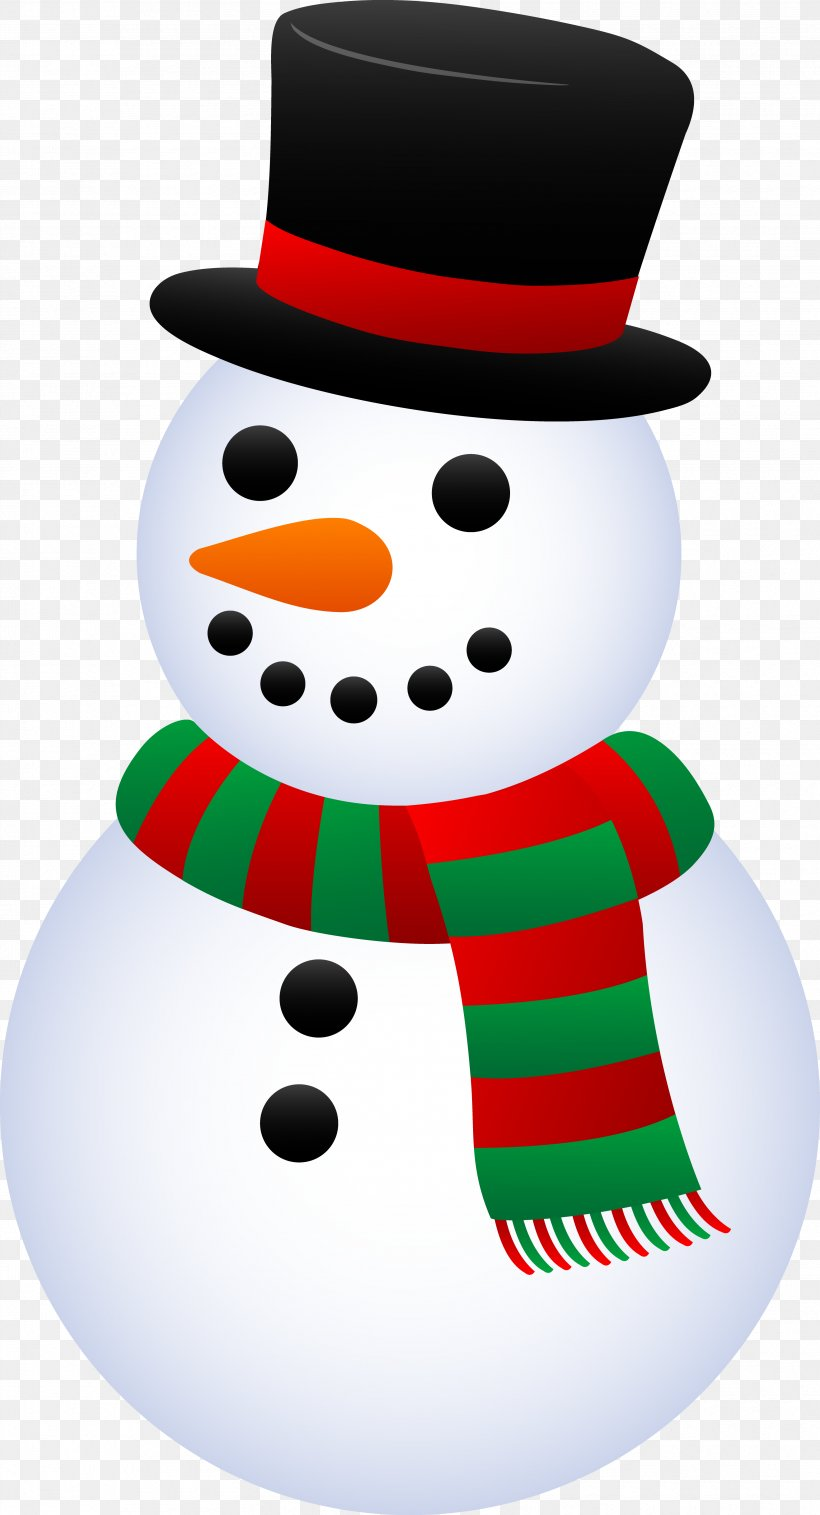 Snowman Christmas Gift Clip Art, PNG, 3455x6386px, Snowman, Christmas, Christmas Carol, Christmas Decoration, Christmas Ornament Download Free